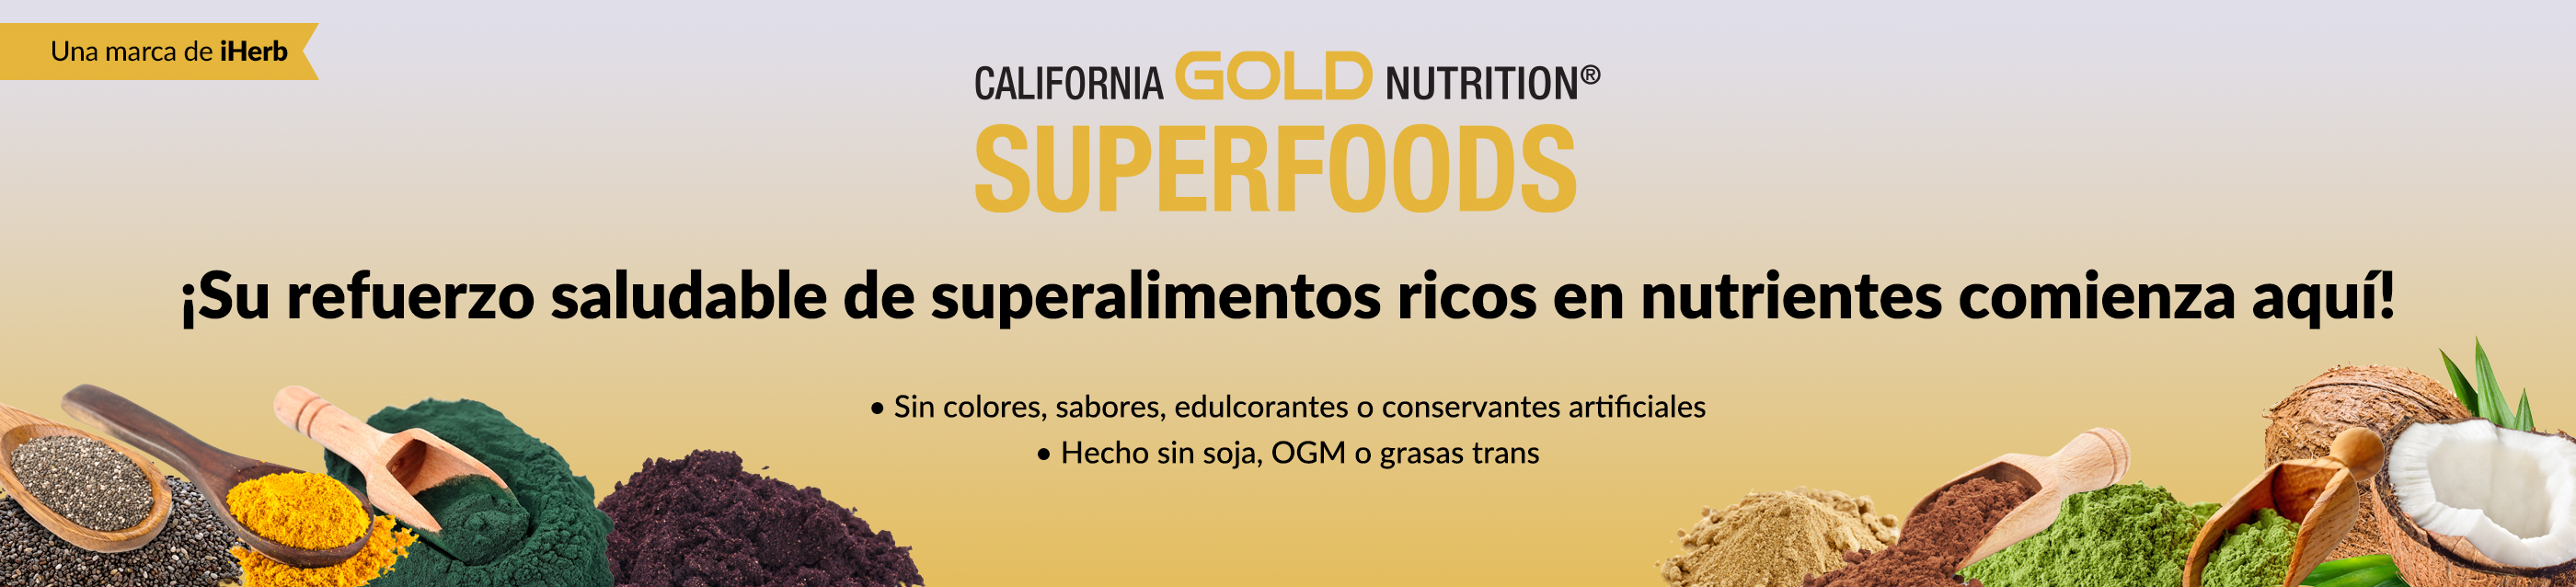 CGN Superfoods